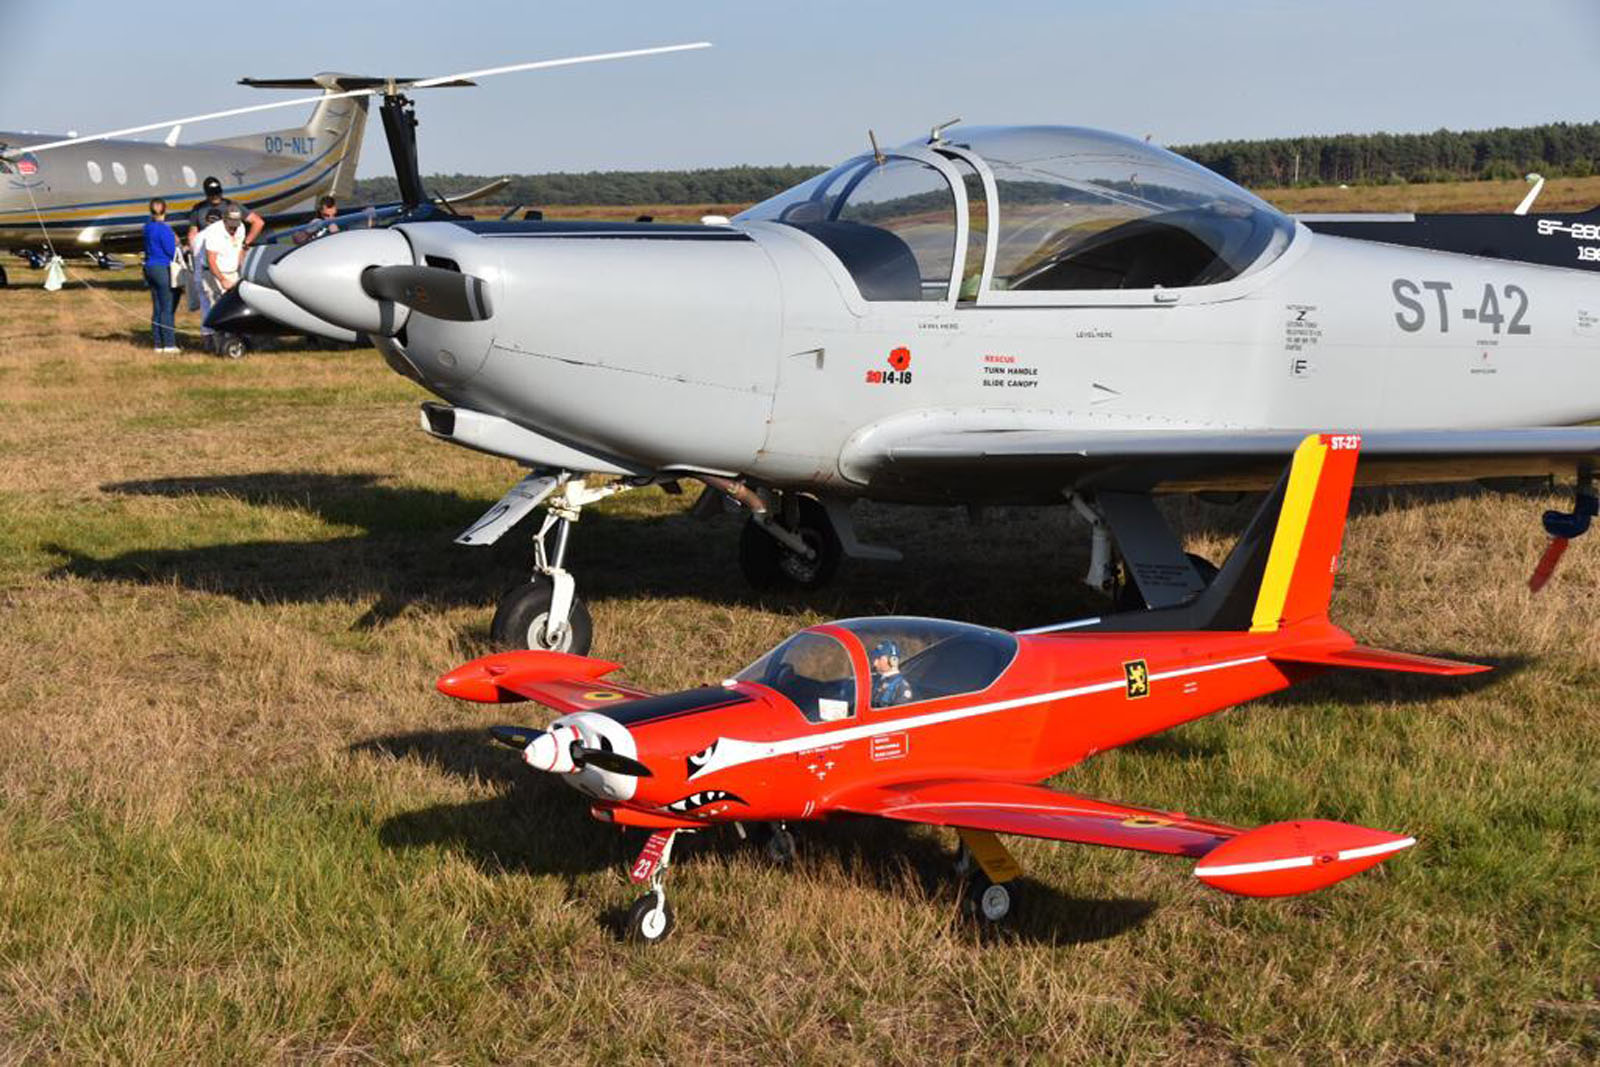 Sanicole-Airshow-15Sep19-MartinGillet (1)